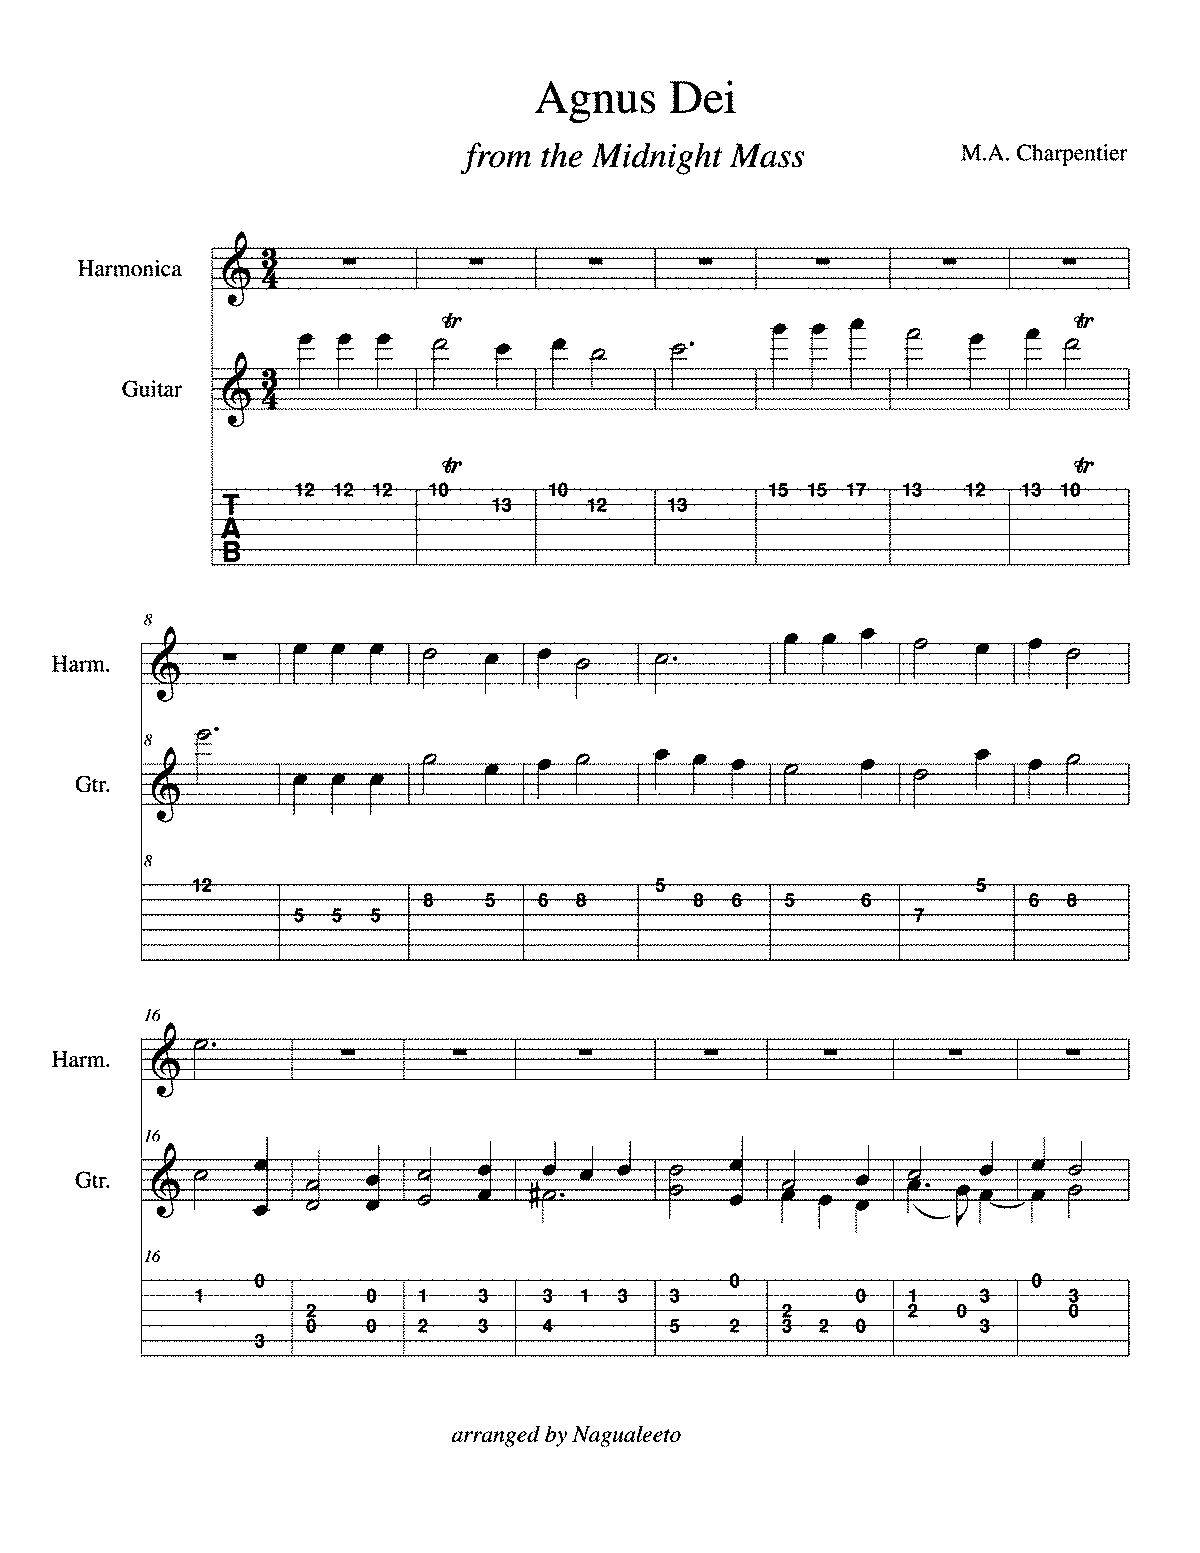 PMLP298600-Agnus Dei from Midnight Mass for Harmonica and Guitar.pdf